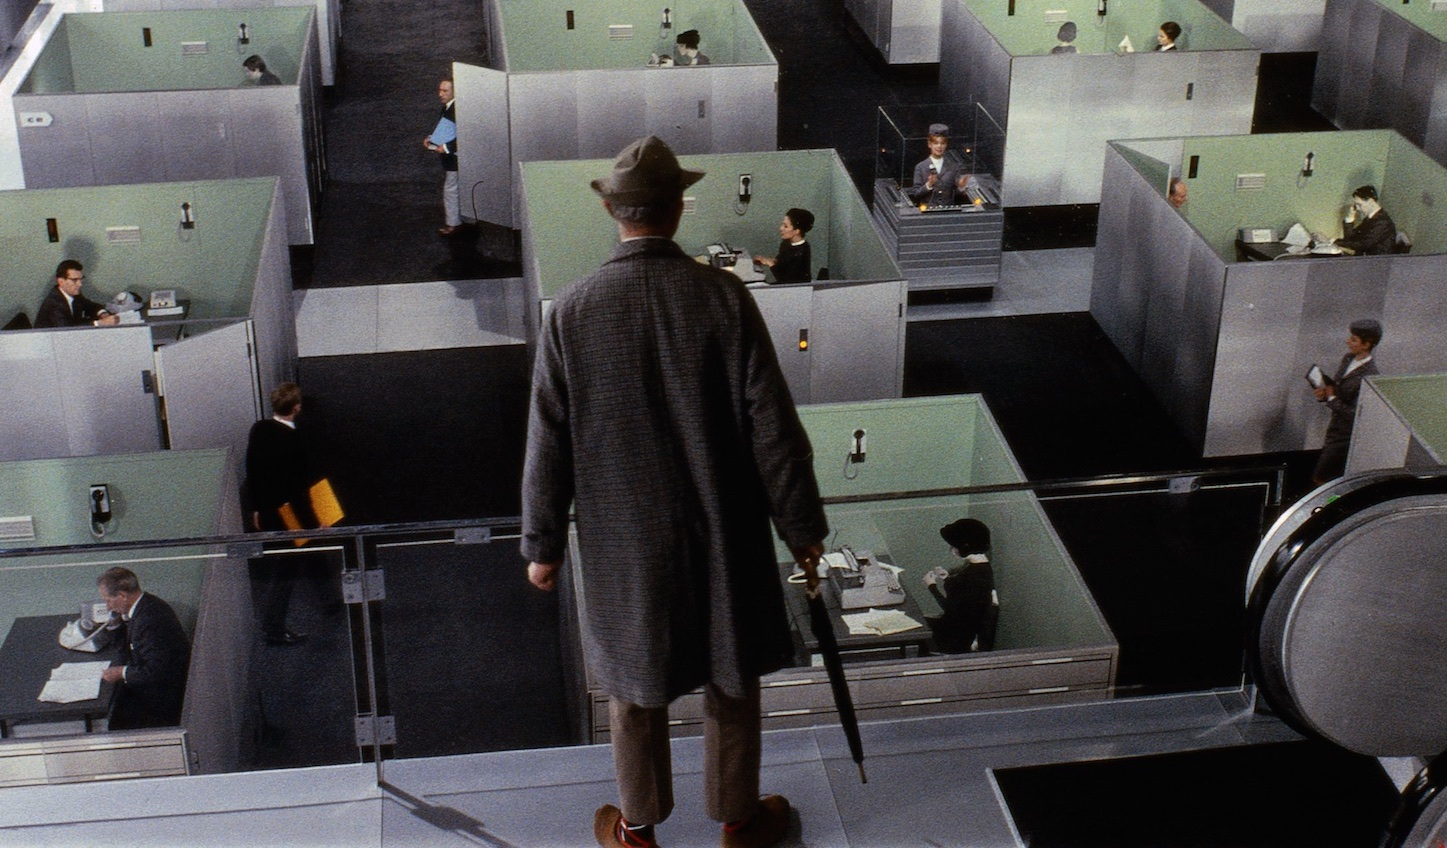 playtime-1967-002-tati-confronted-with-room-full-of-work-cubicles-1000x750.jpg